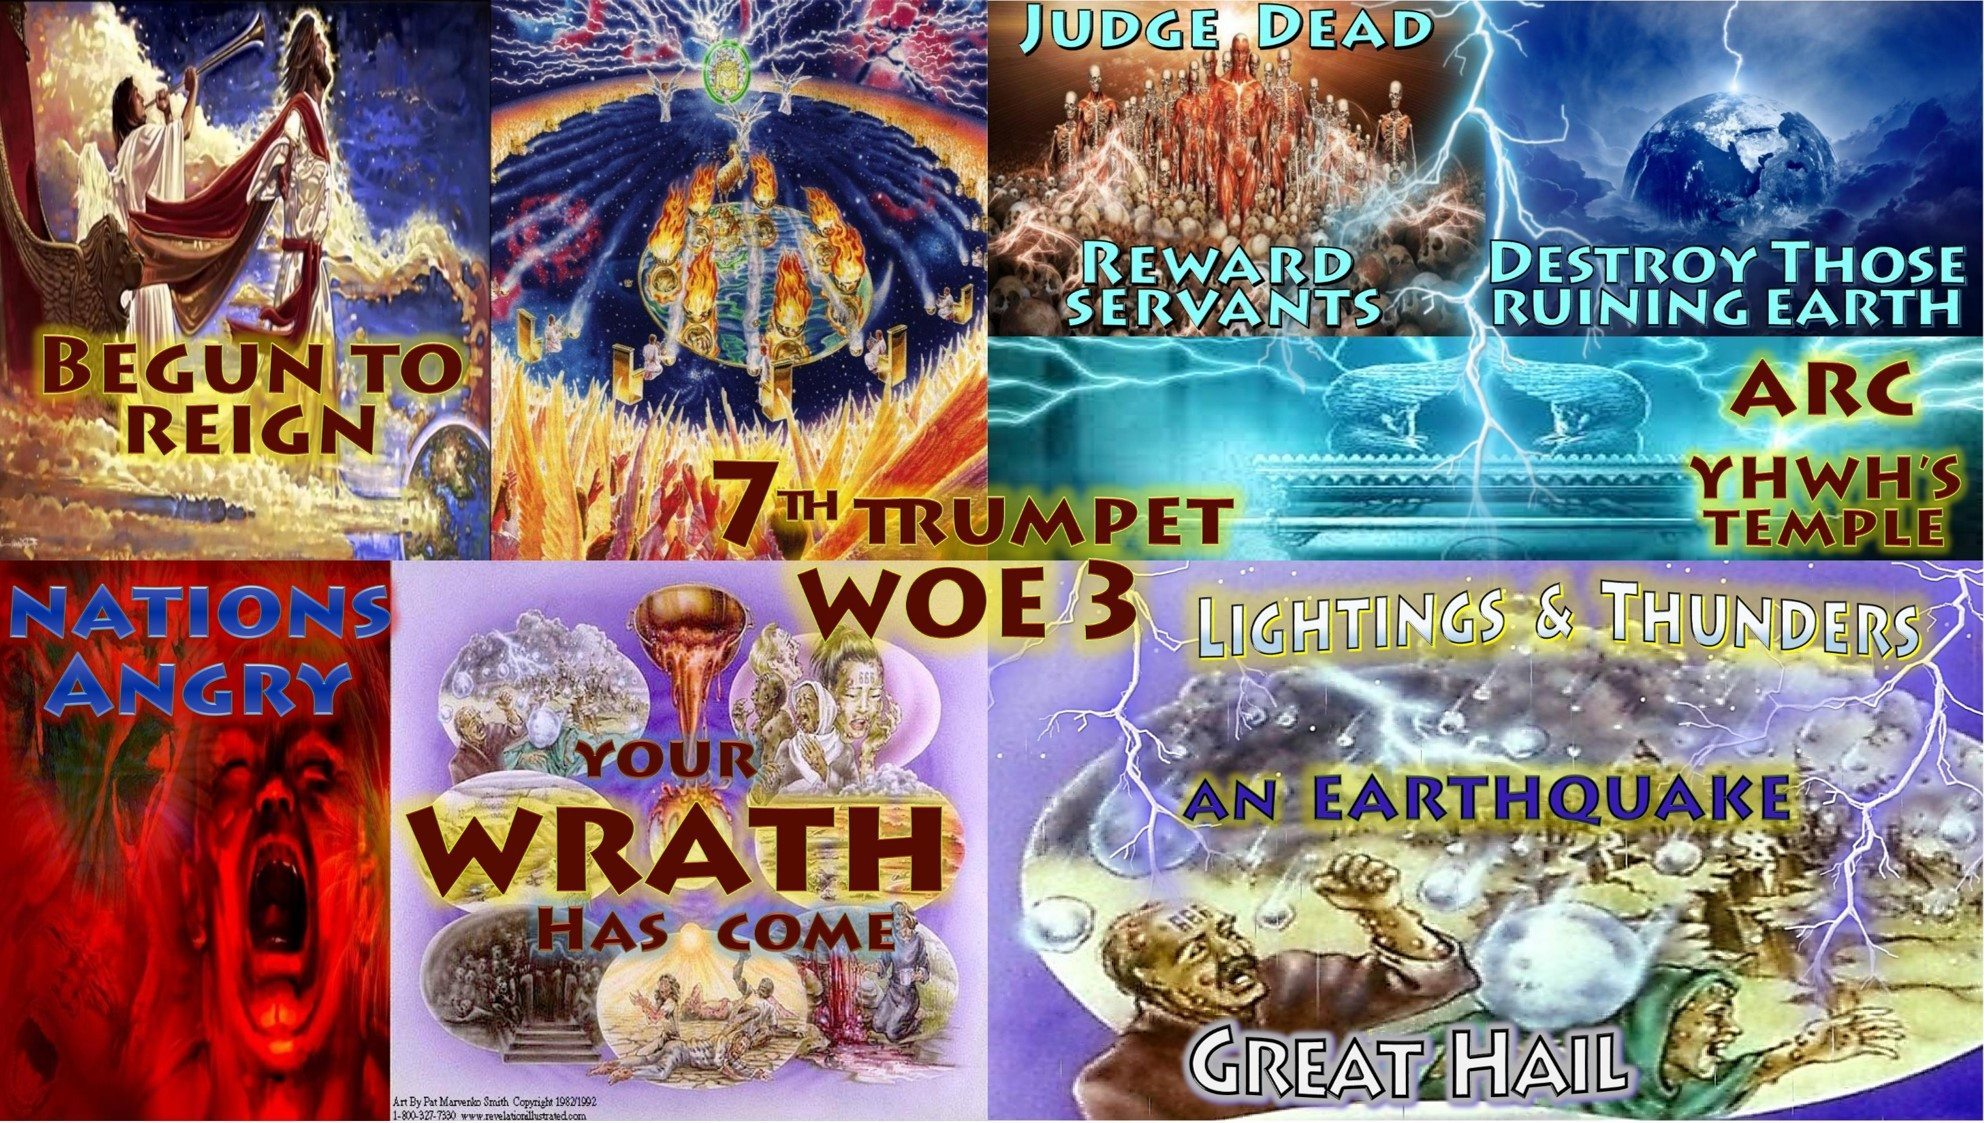 Seventh-Trumpet-Third-Woe-Begun-to-Reign-Nations-Angry-Wrath-Reward-Judg-Dead-Arc-Hail-Seven-Trumpets-Book-of-Revelation